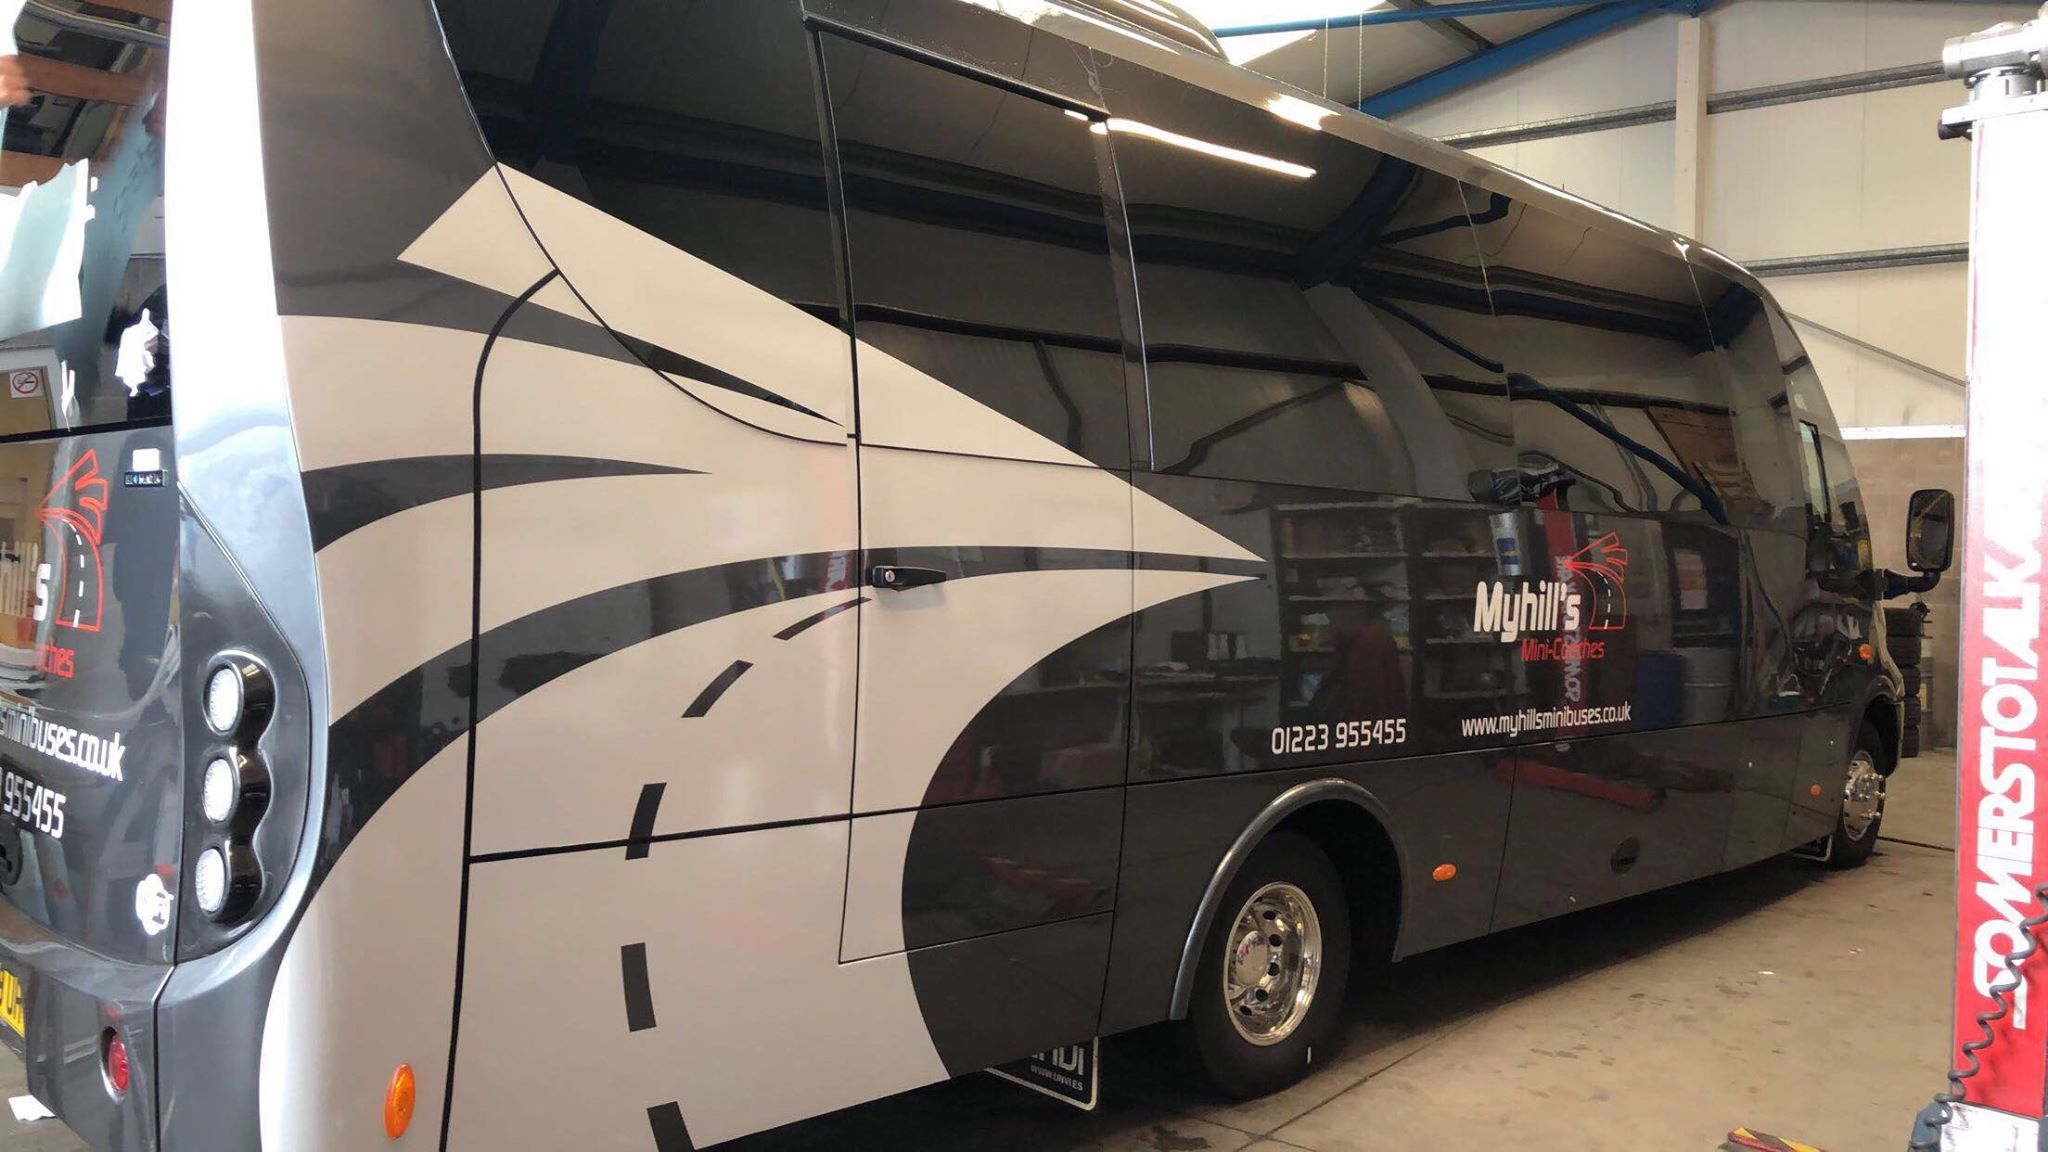 Myhills vinyl coach graphics with reflective details